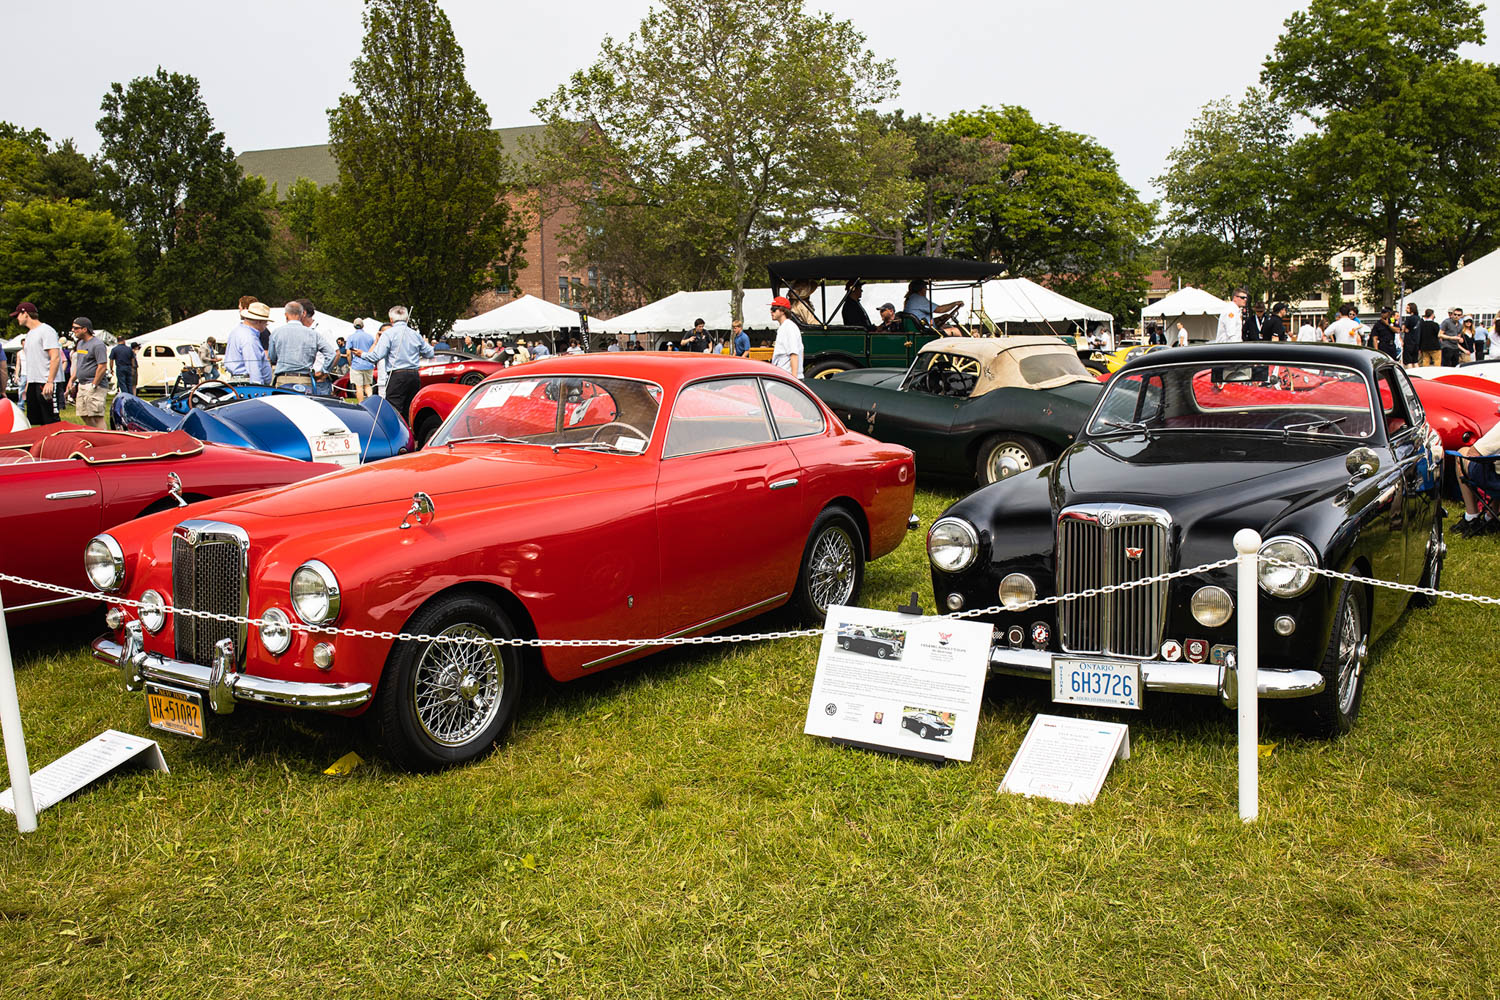 pair of Arnolt-MG